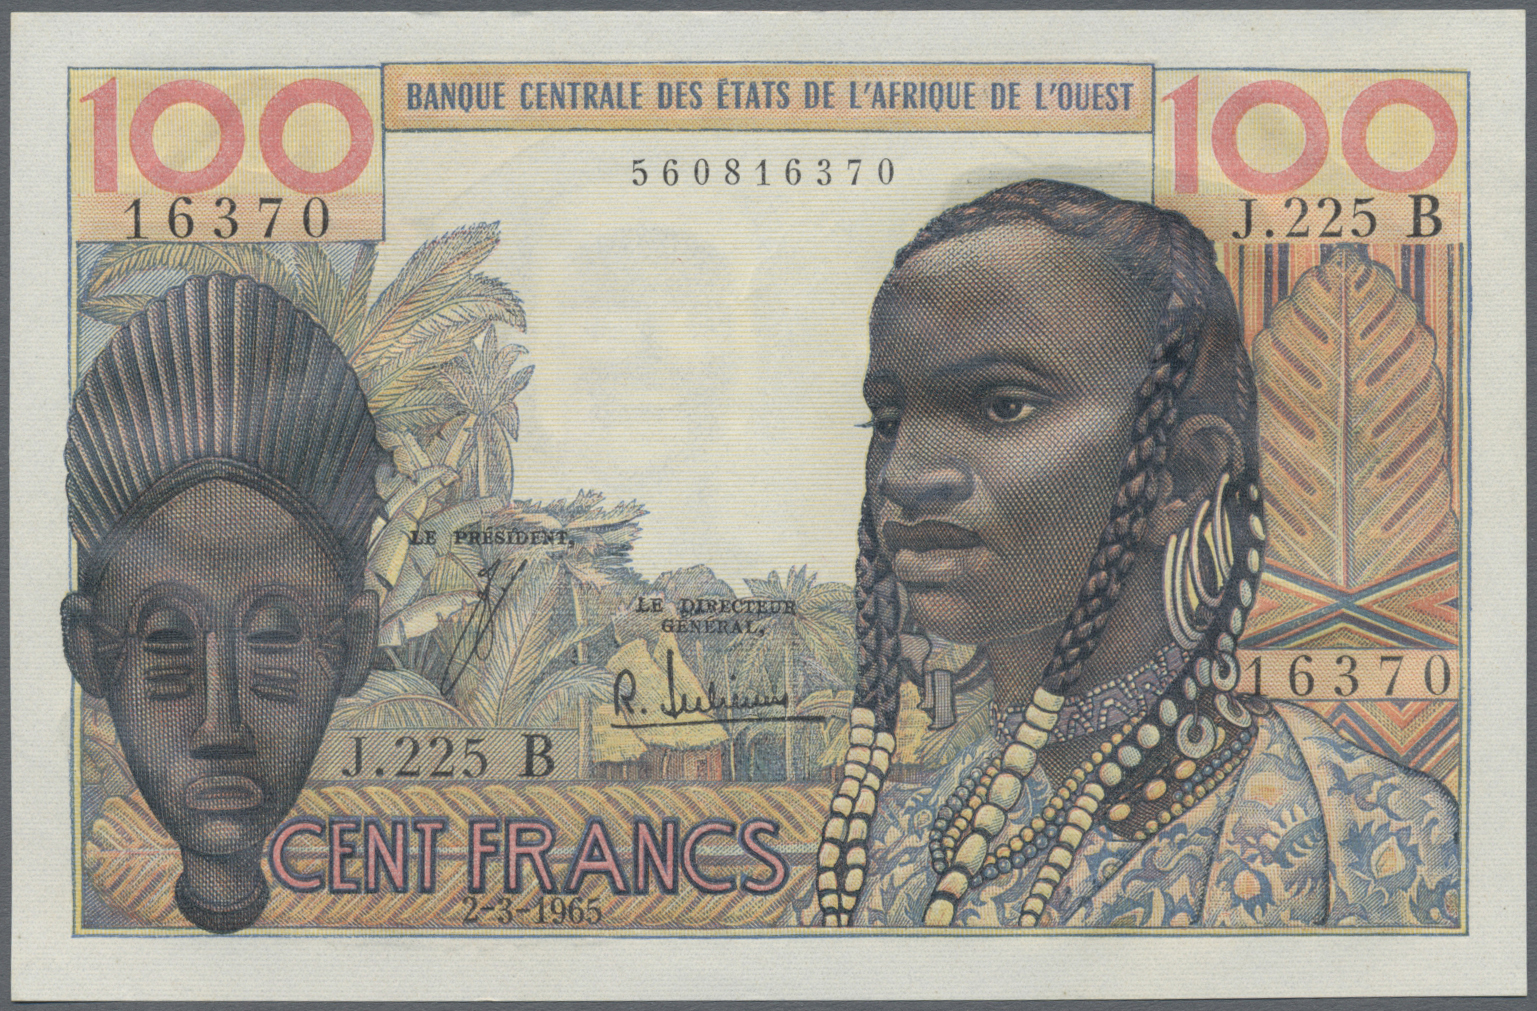 Paper Money: World West African States Ivory Coast 10000 Francs 2001 P-114a Unc Africa